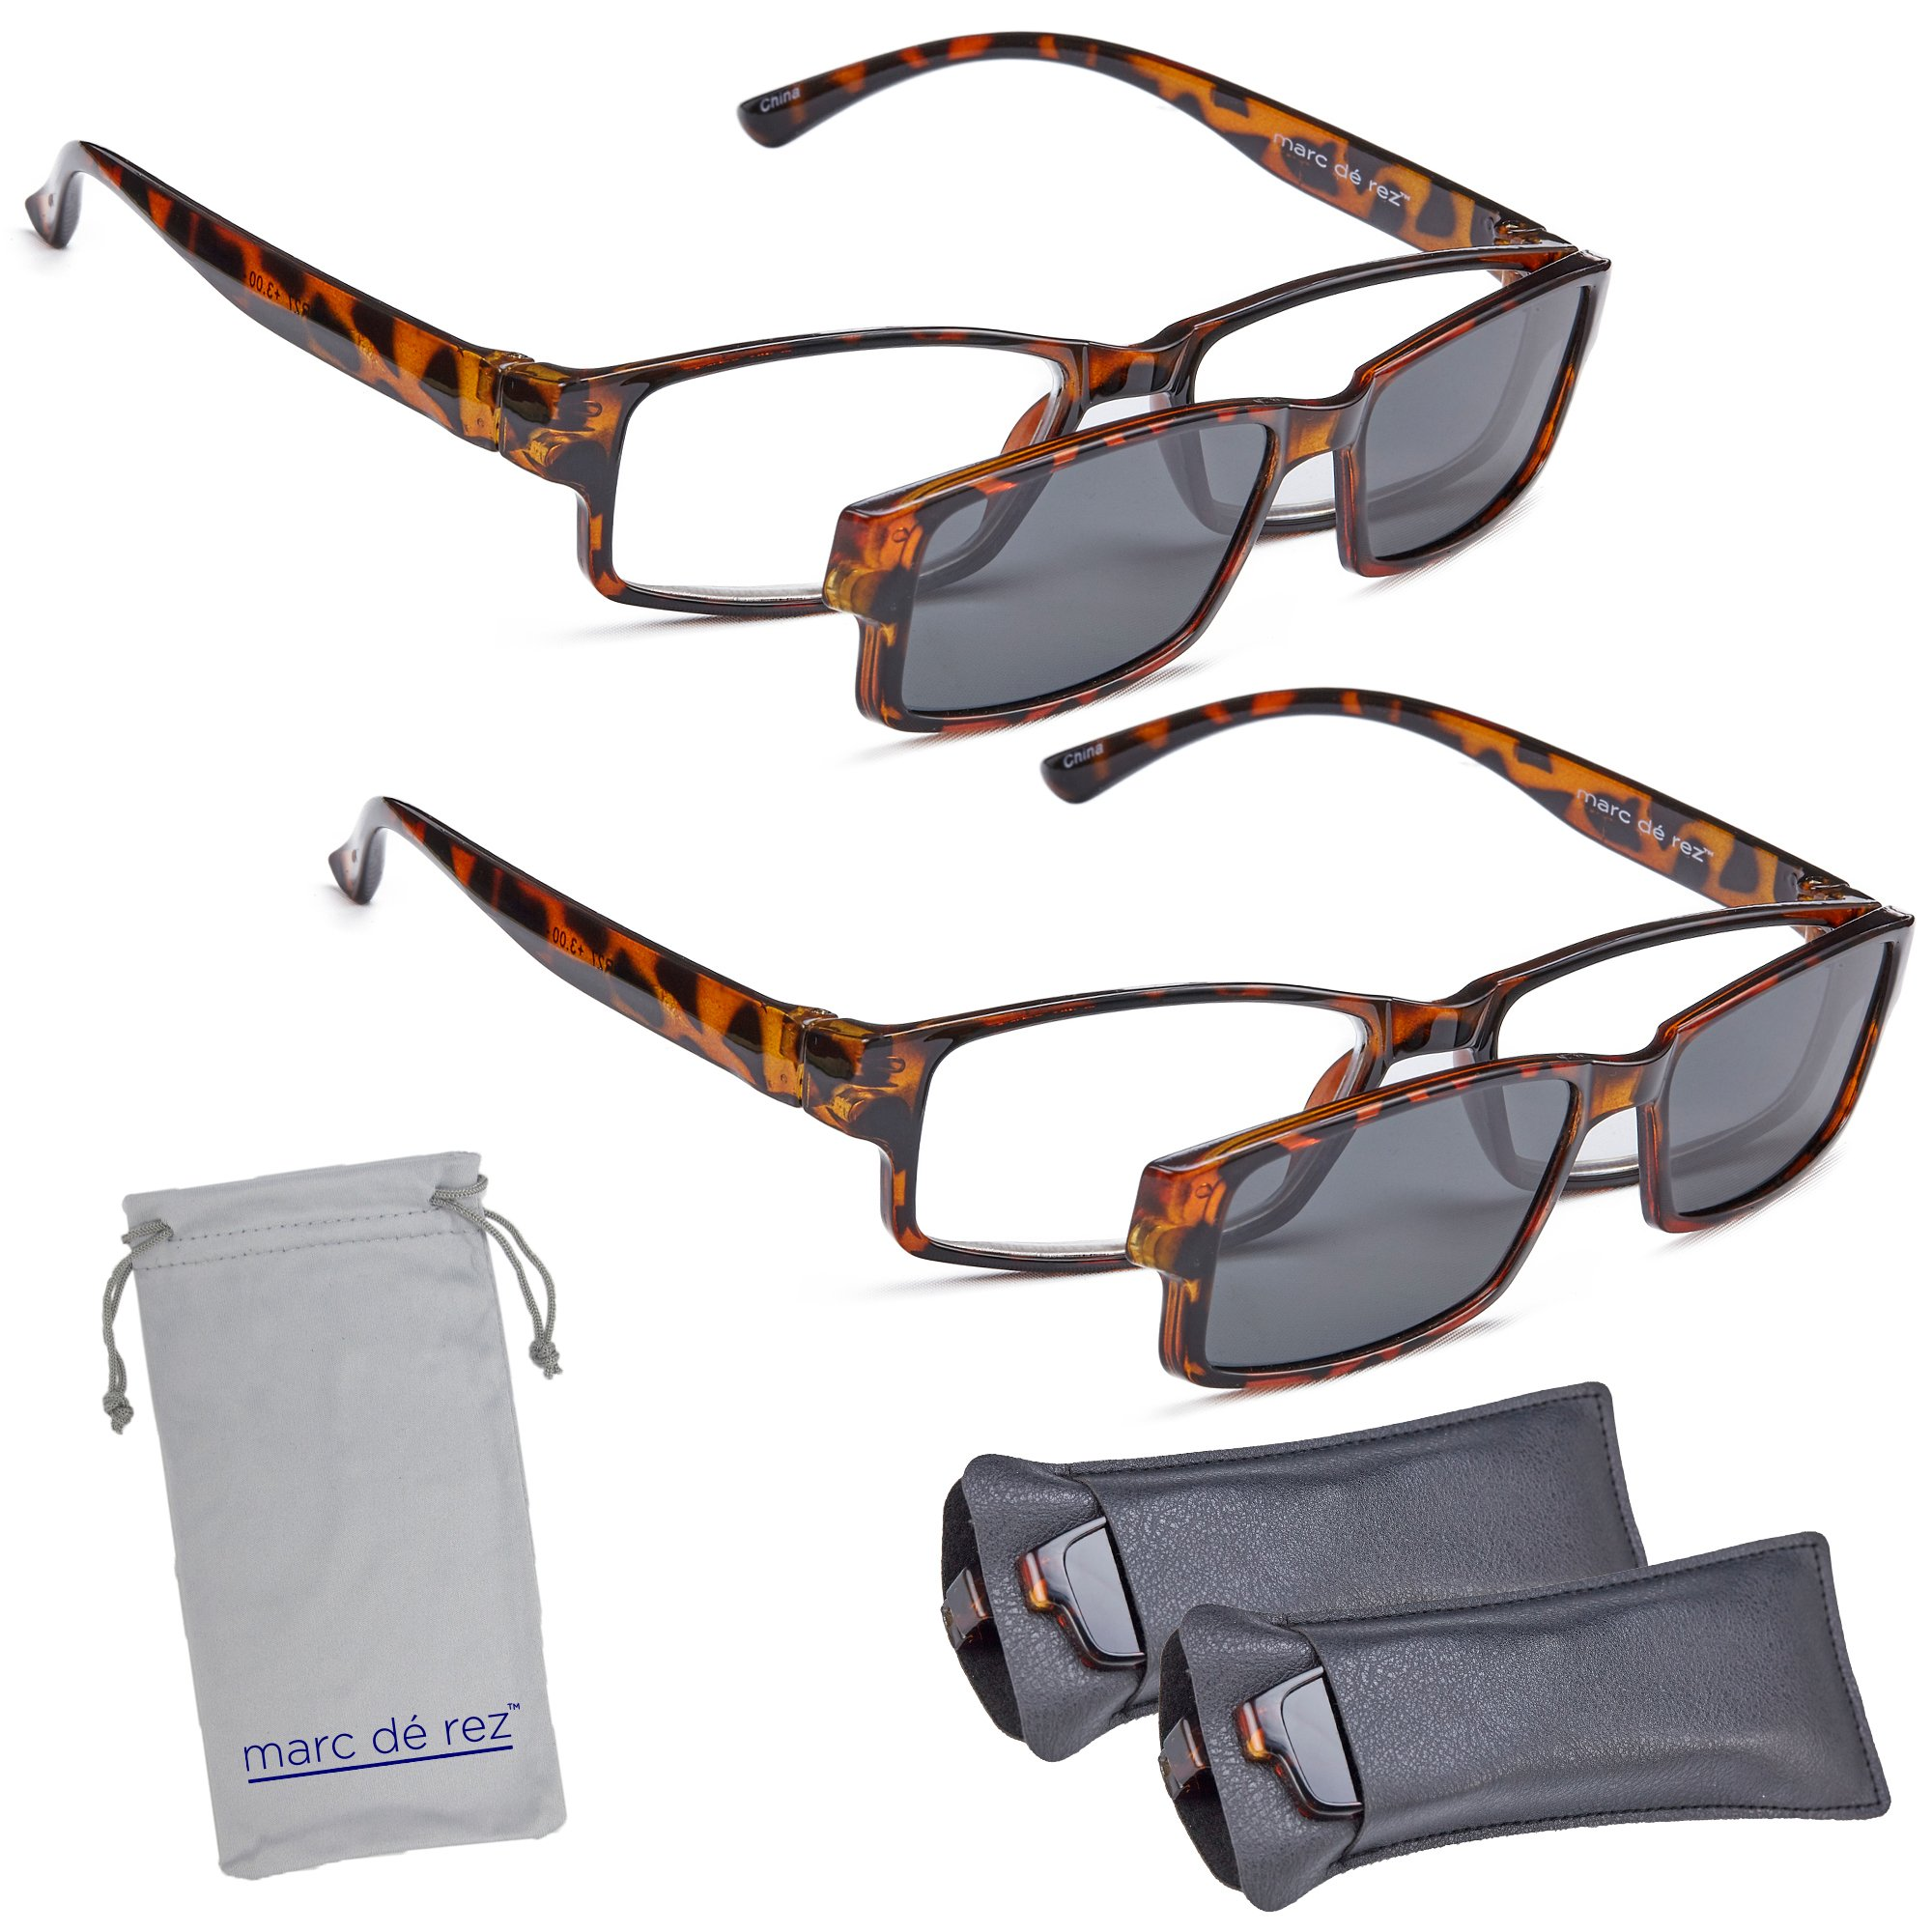 Marc De Rez Computer Reading Glasses With Clip On Sunglasses - 2 Pack - Anti Blue Light Prescription Readers, Magnetic Sun Shades and Pouch - UVC, UVB and UVA Protection - Tortoise, 2.50 by Marc De Rez